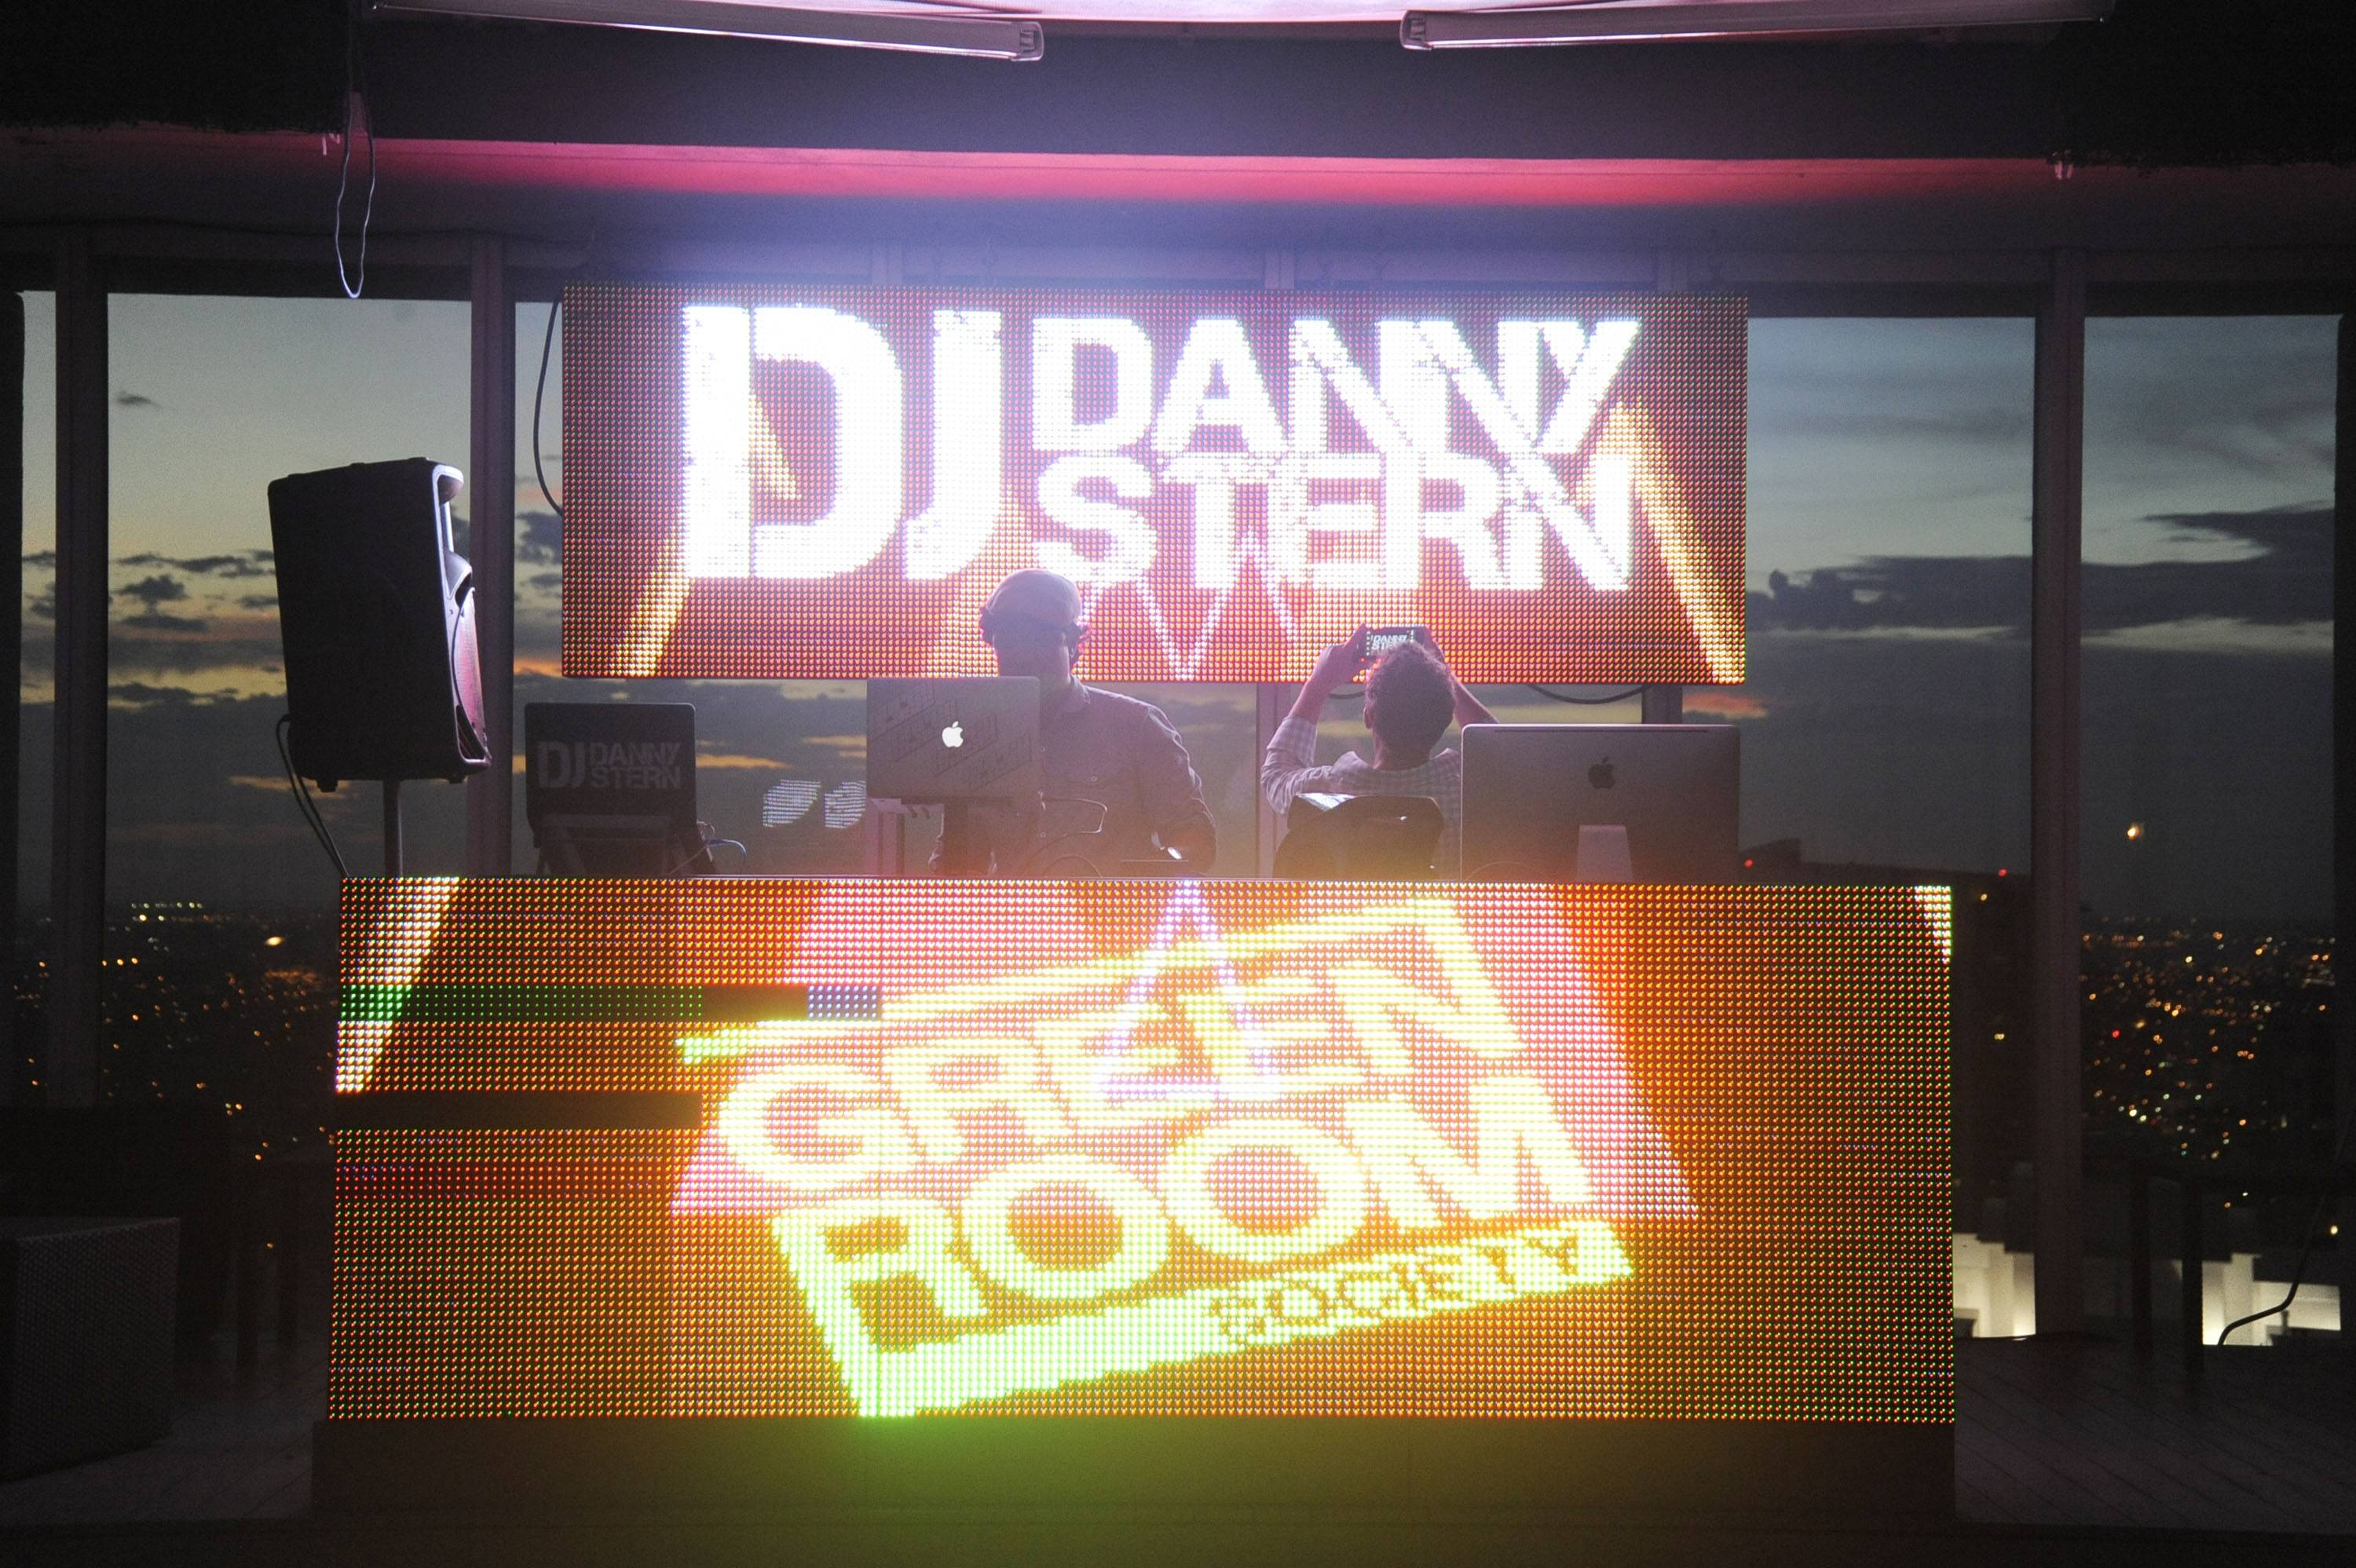 DJ Danny Stern & DJ Corey Chase on the turntables at the Green Room Society's season kick-off event